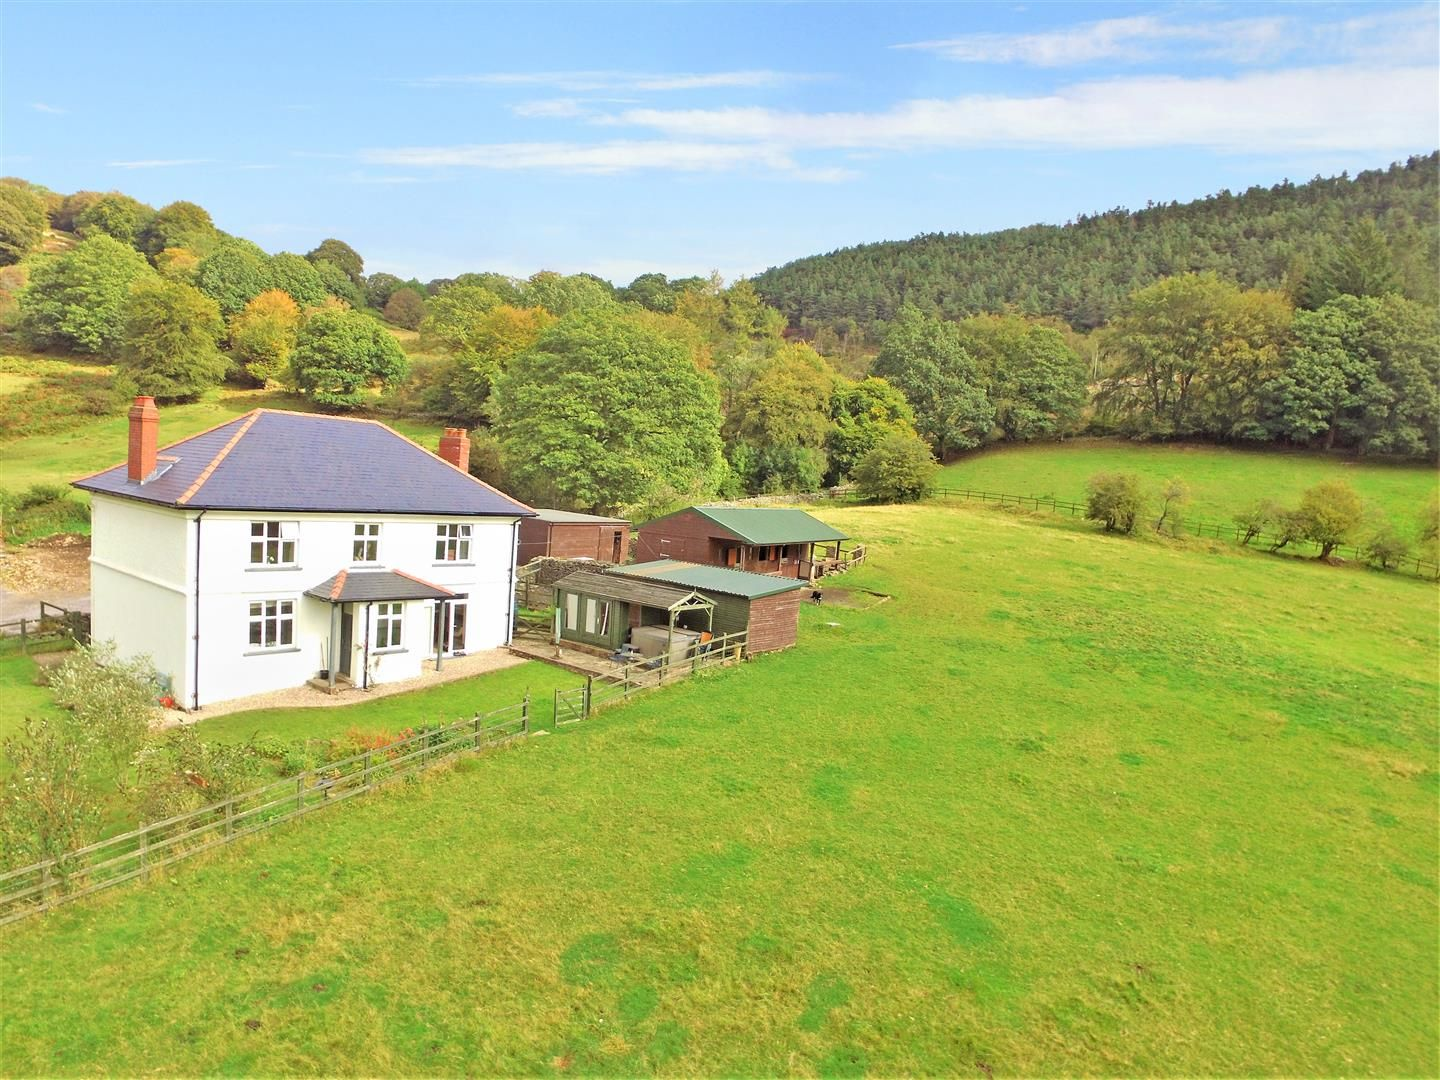 4 bed detached for sale in Hollybush, NP12